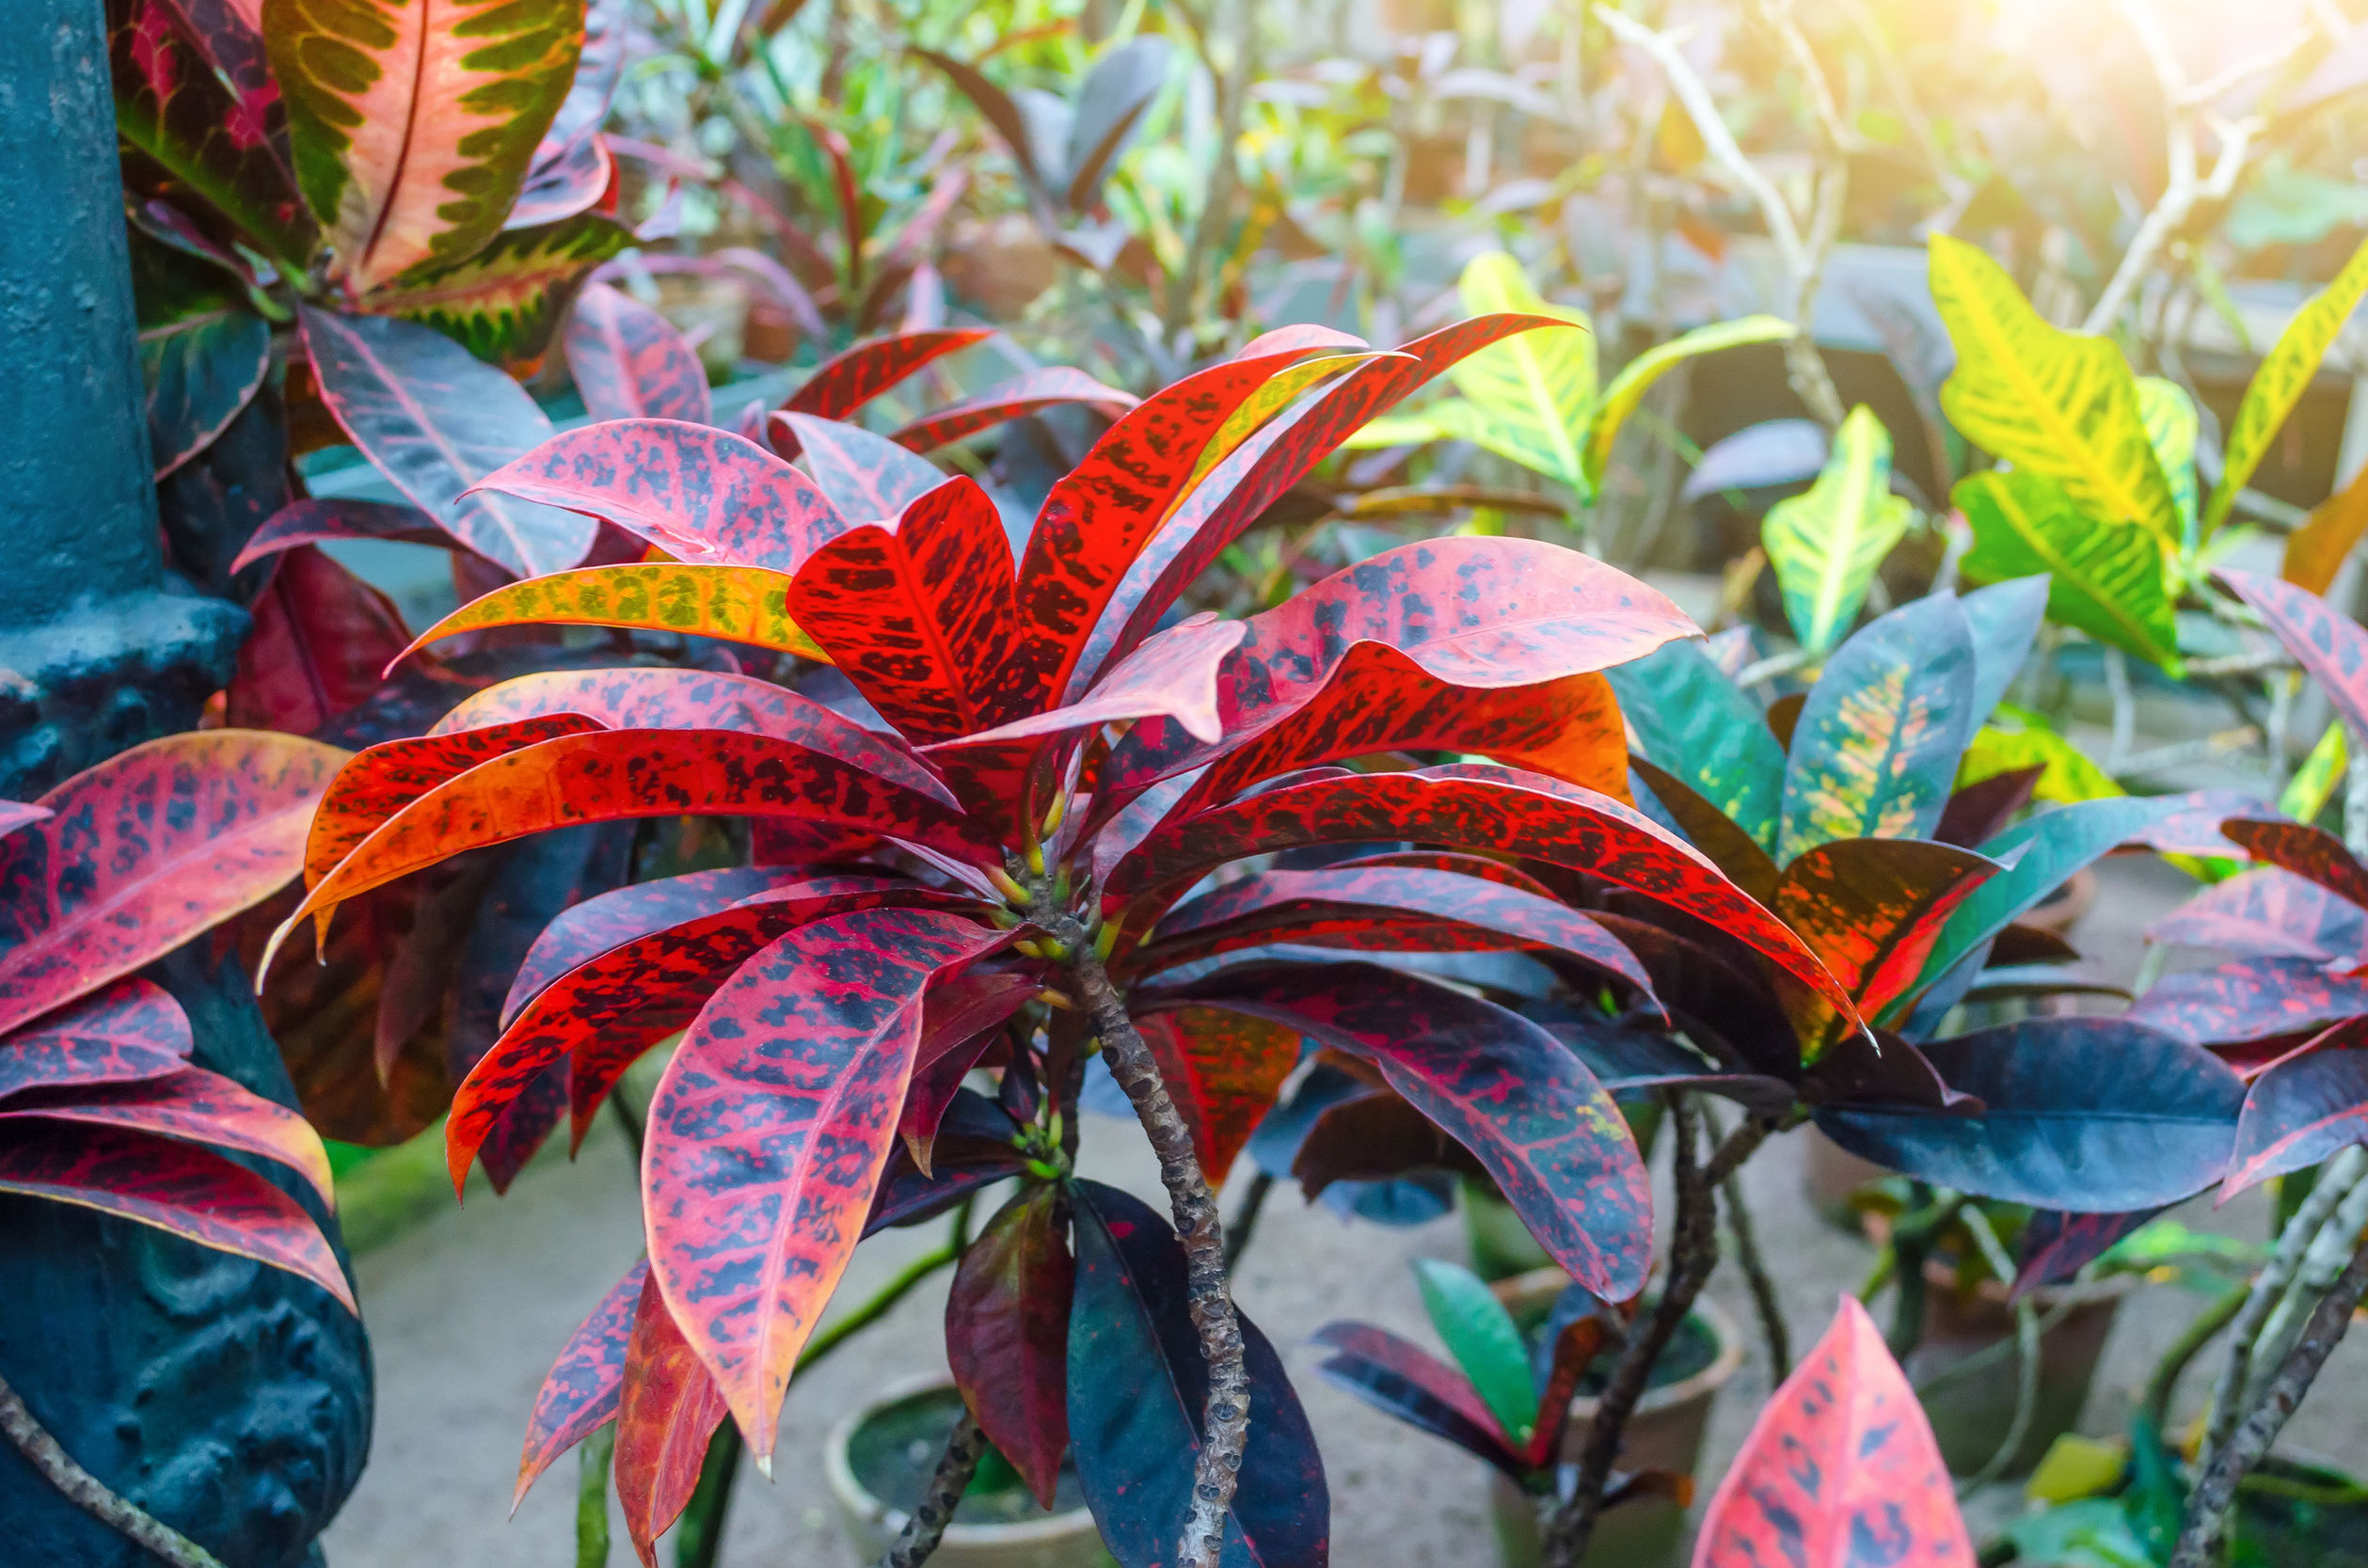 Croton Codiaeum variegatum plants with colorful leaves in tropical garden.